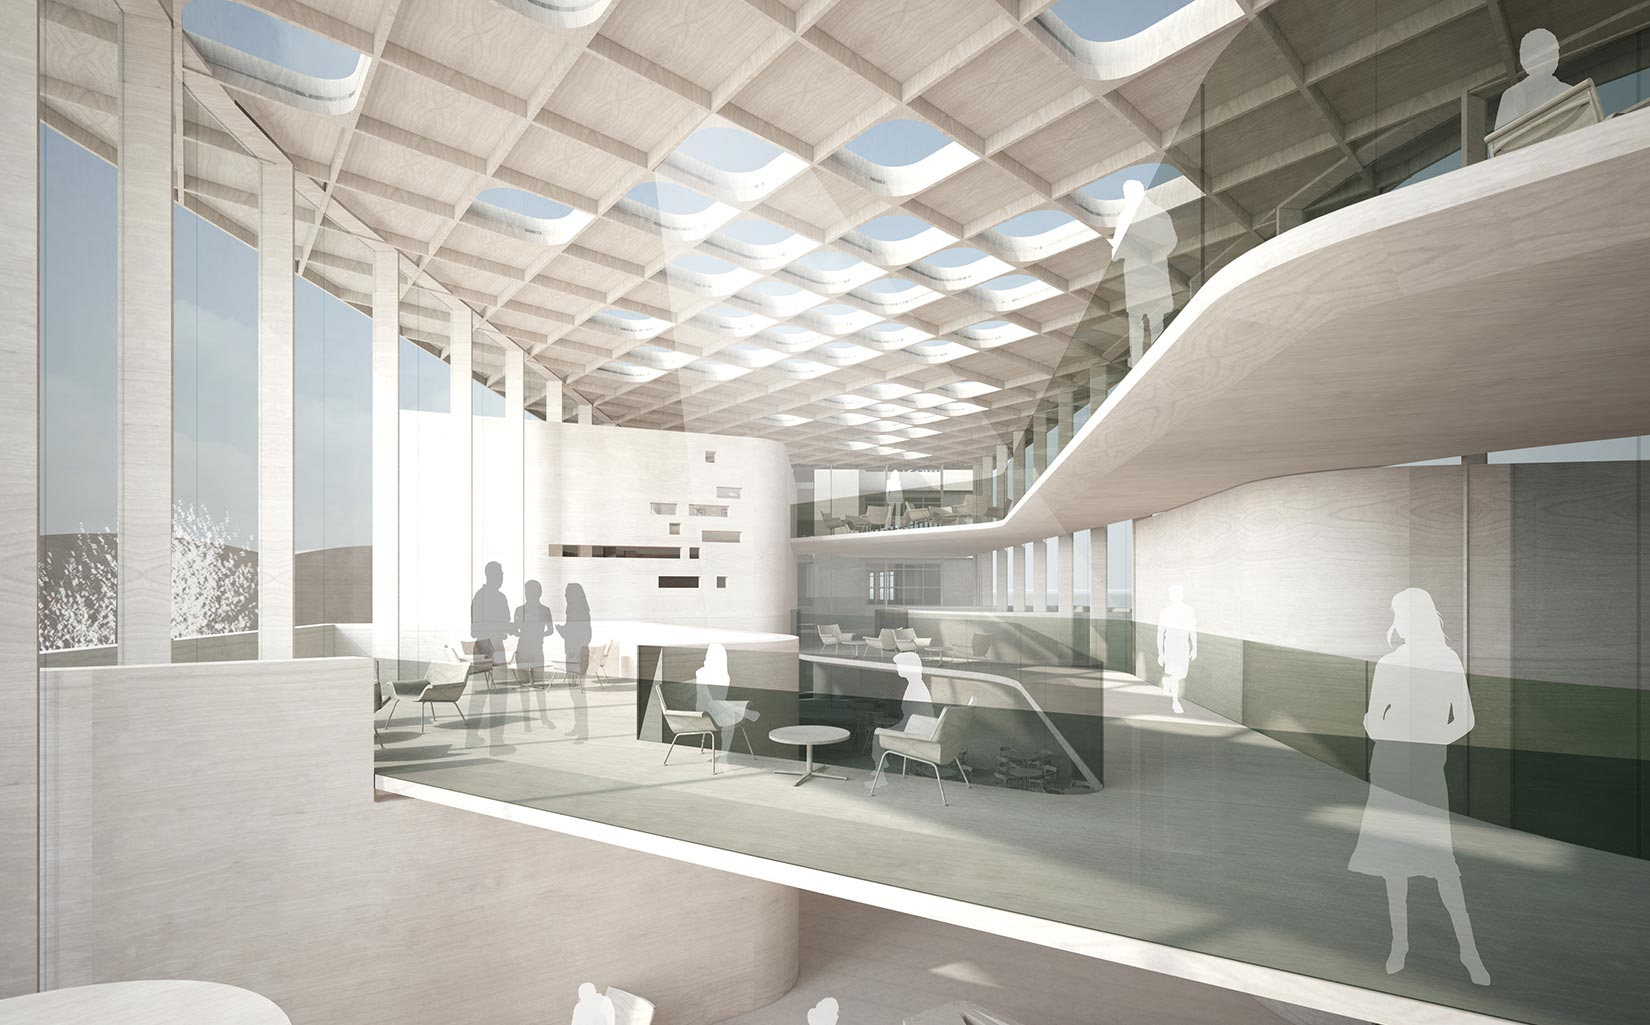 B. Braun Innovation, Communication & Education Centre, Sheffield, Concept Interior Model looking towards the ceiling